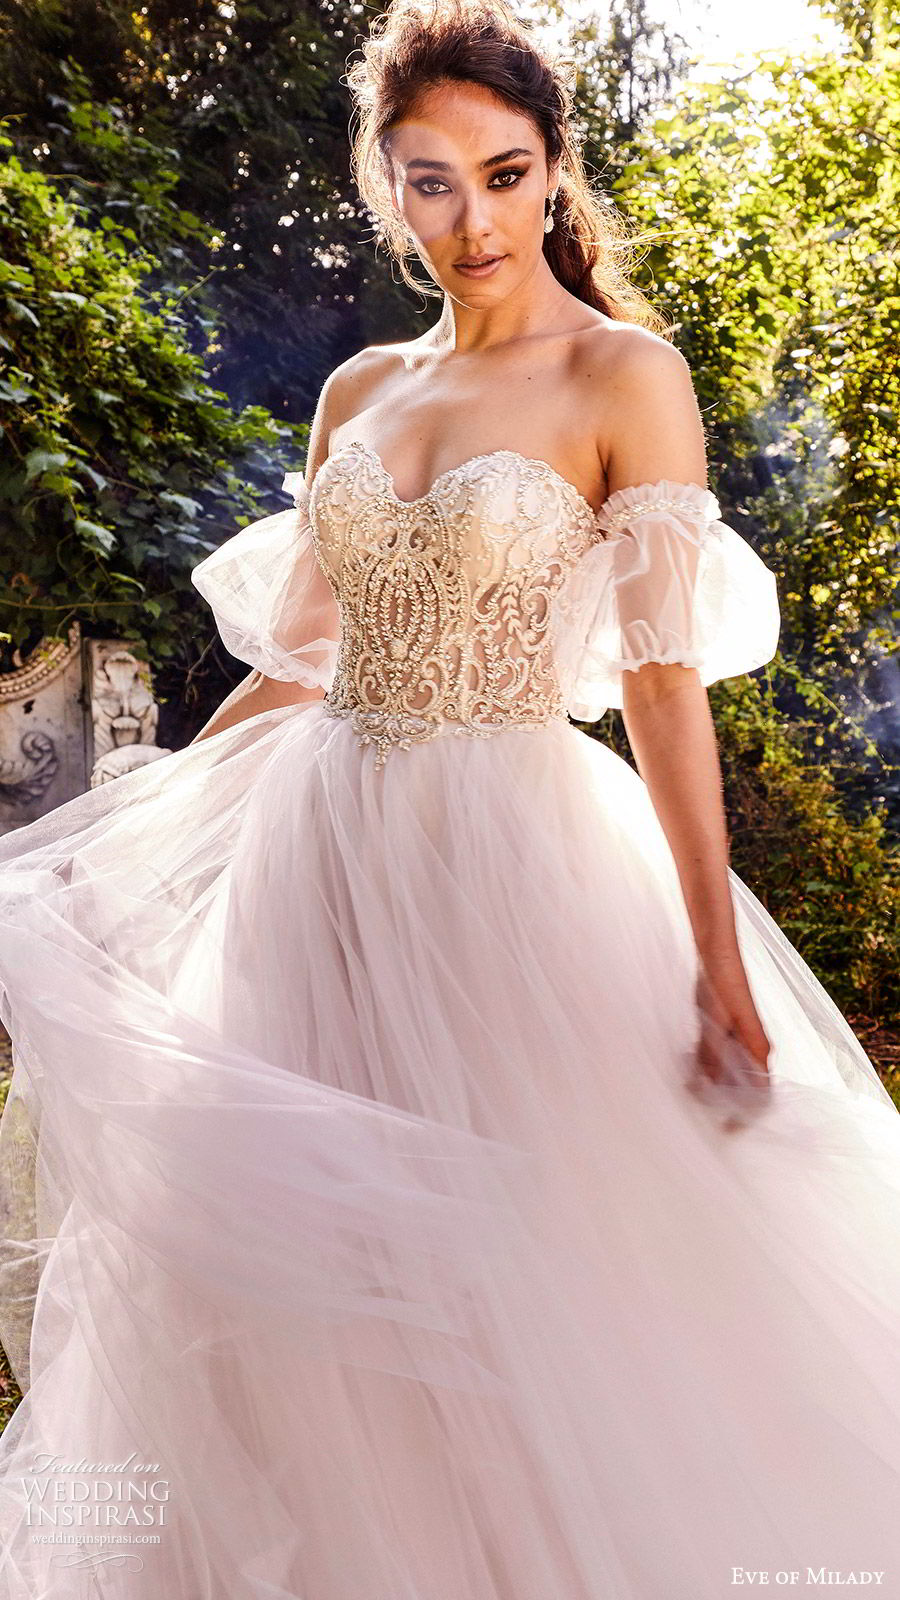 eve of milady fall 2018 bridal detached puff sleeves strapless sweetheart embellished bodice ball gown wedding dress romantic princess blush color (4) zv